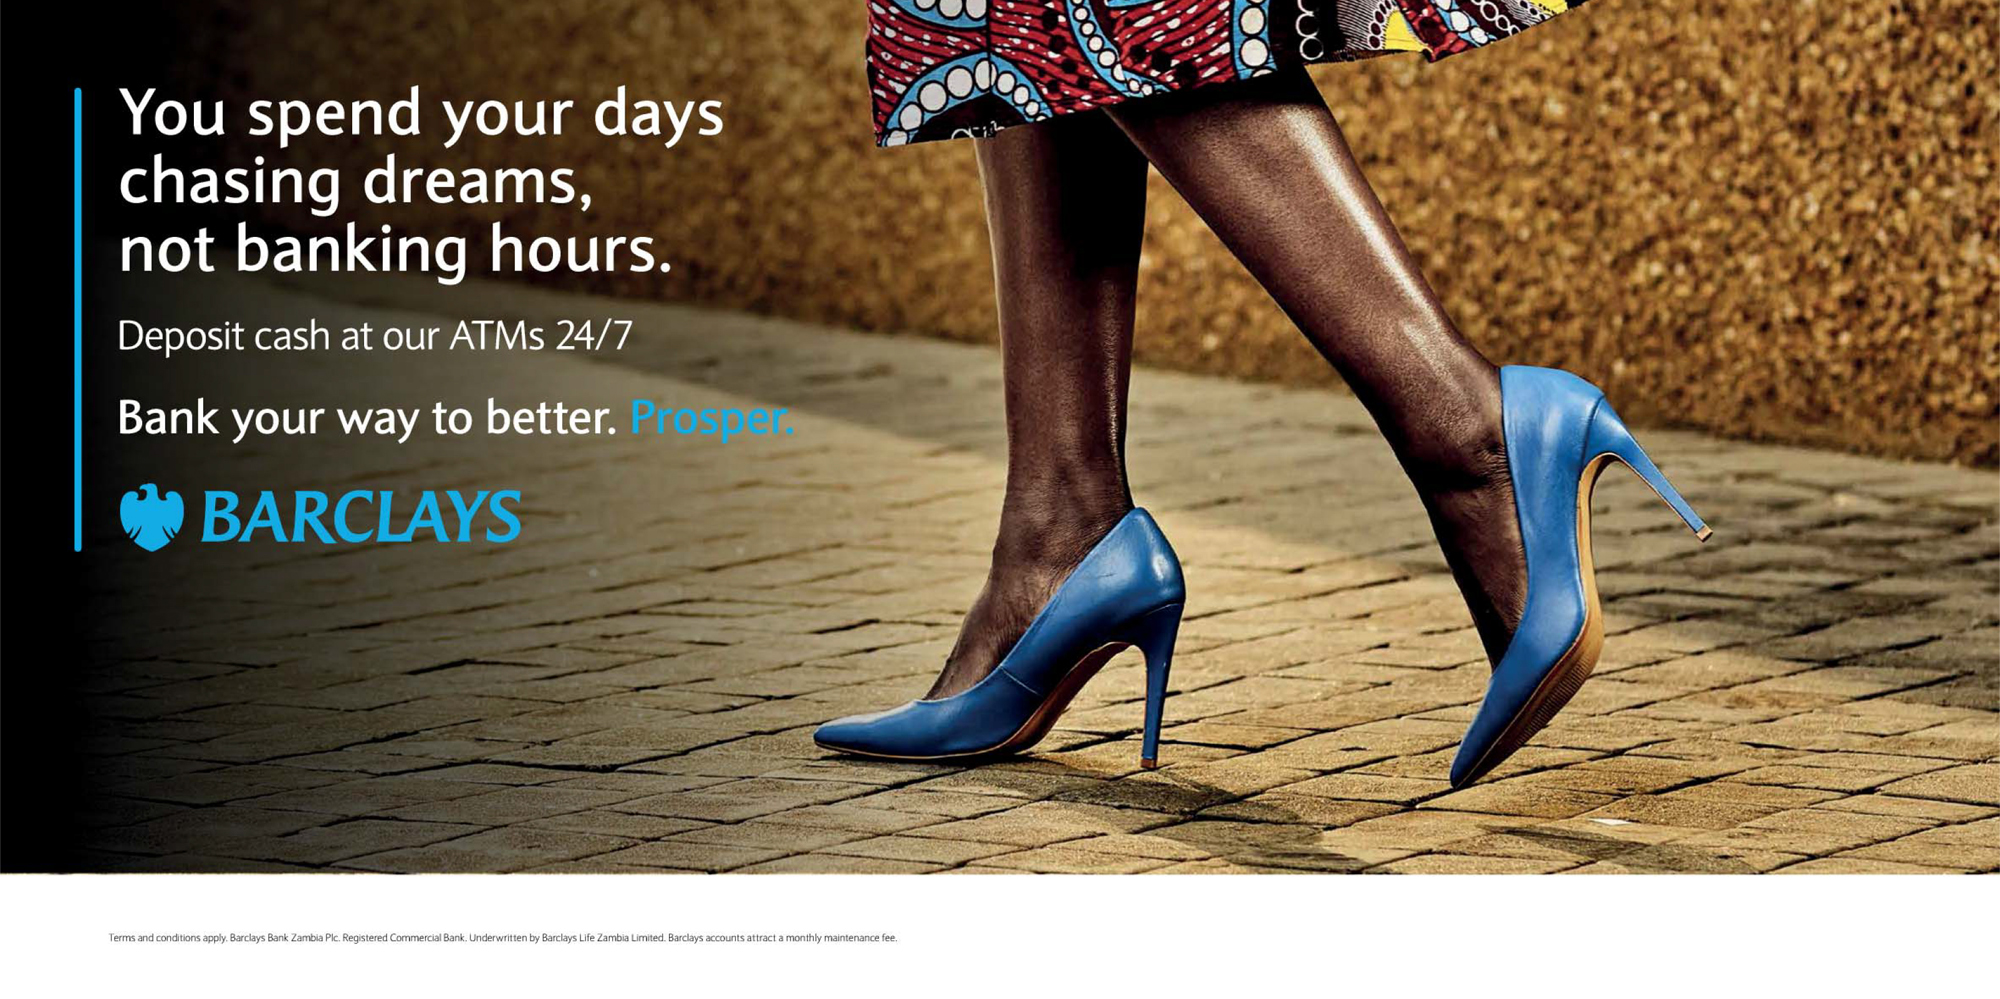 Barclays Personal Banking Campaign Toolkit 26 APRIL-61.jpg